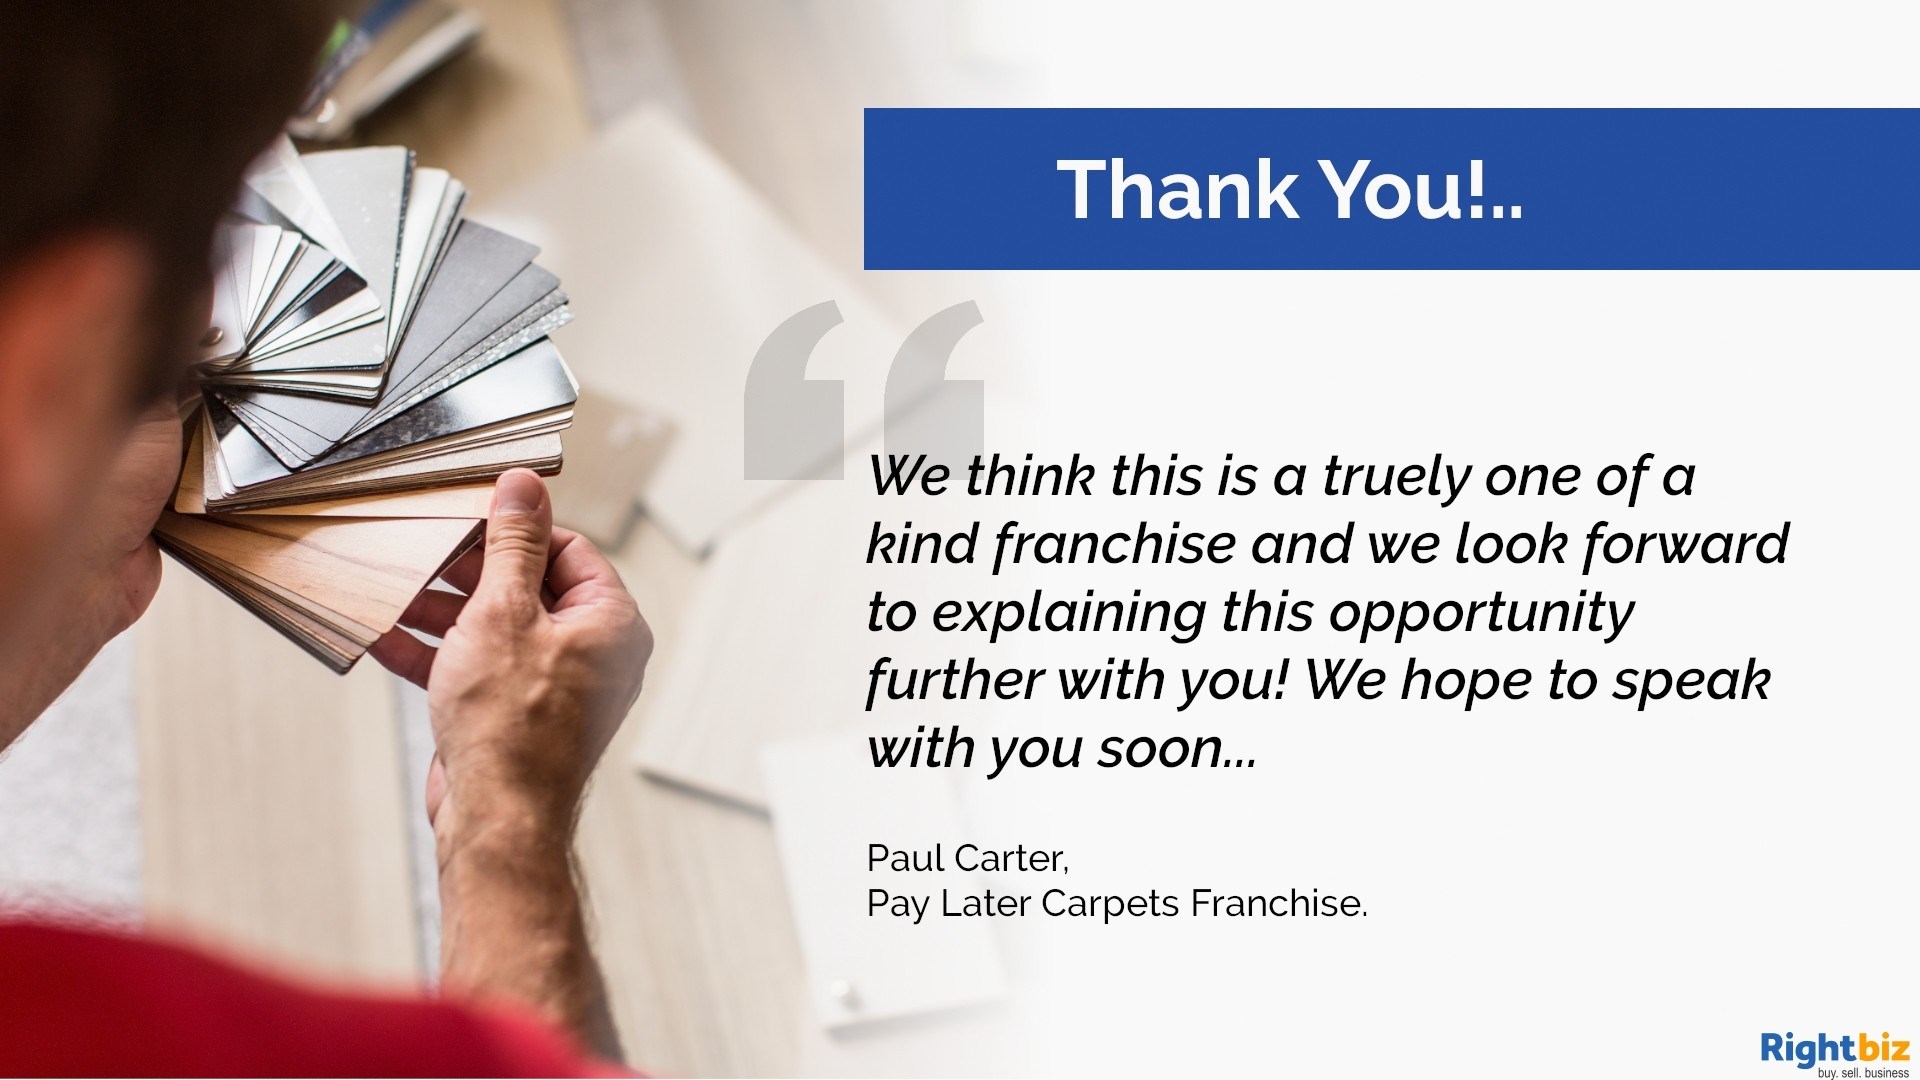 Pay Later Carpets Franchise St Asaph Our First Franchisee Made £11,000+ Profit in Month One - Image 7